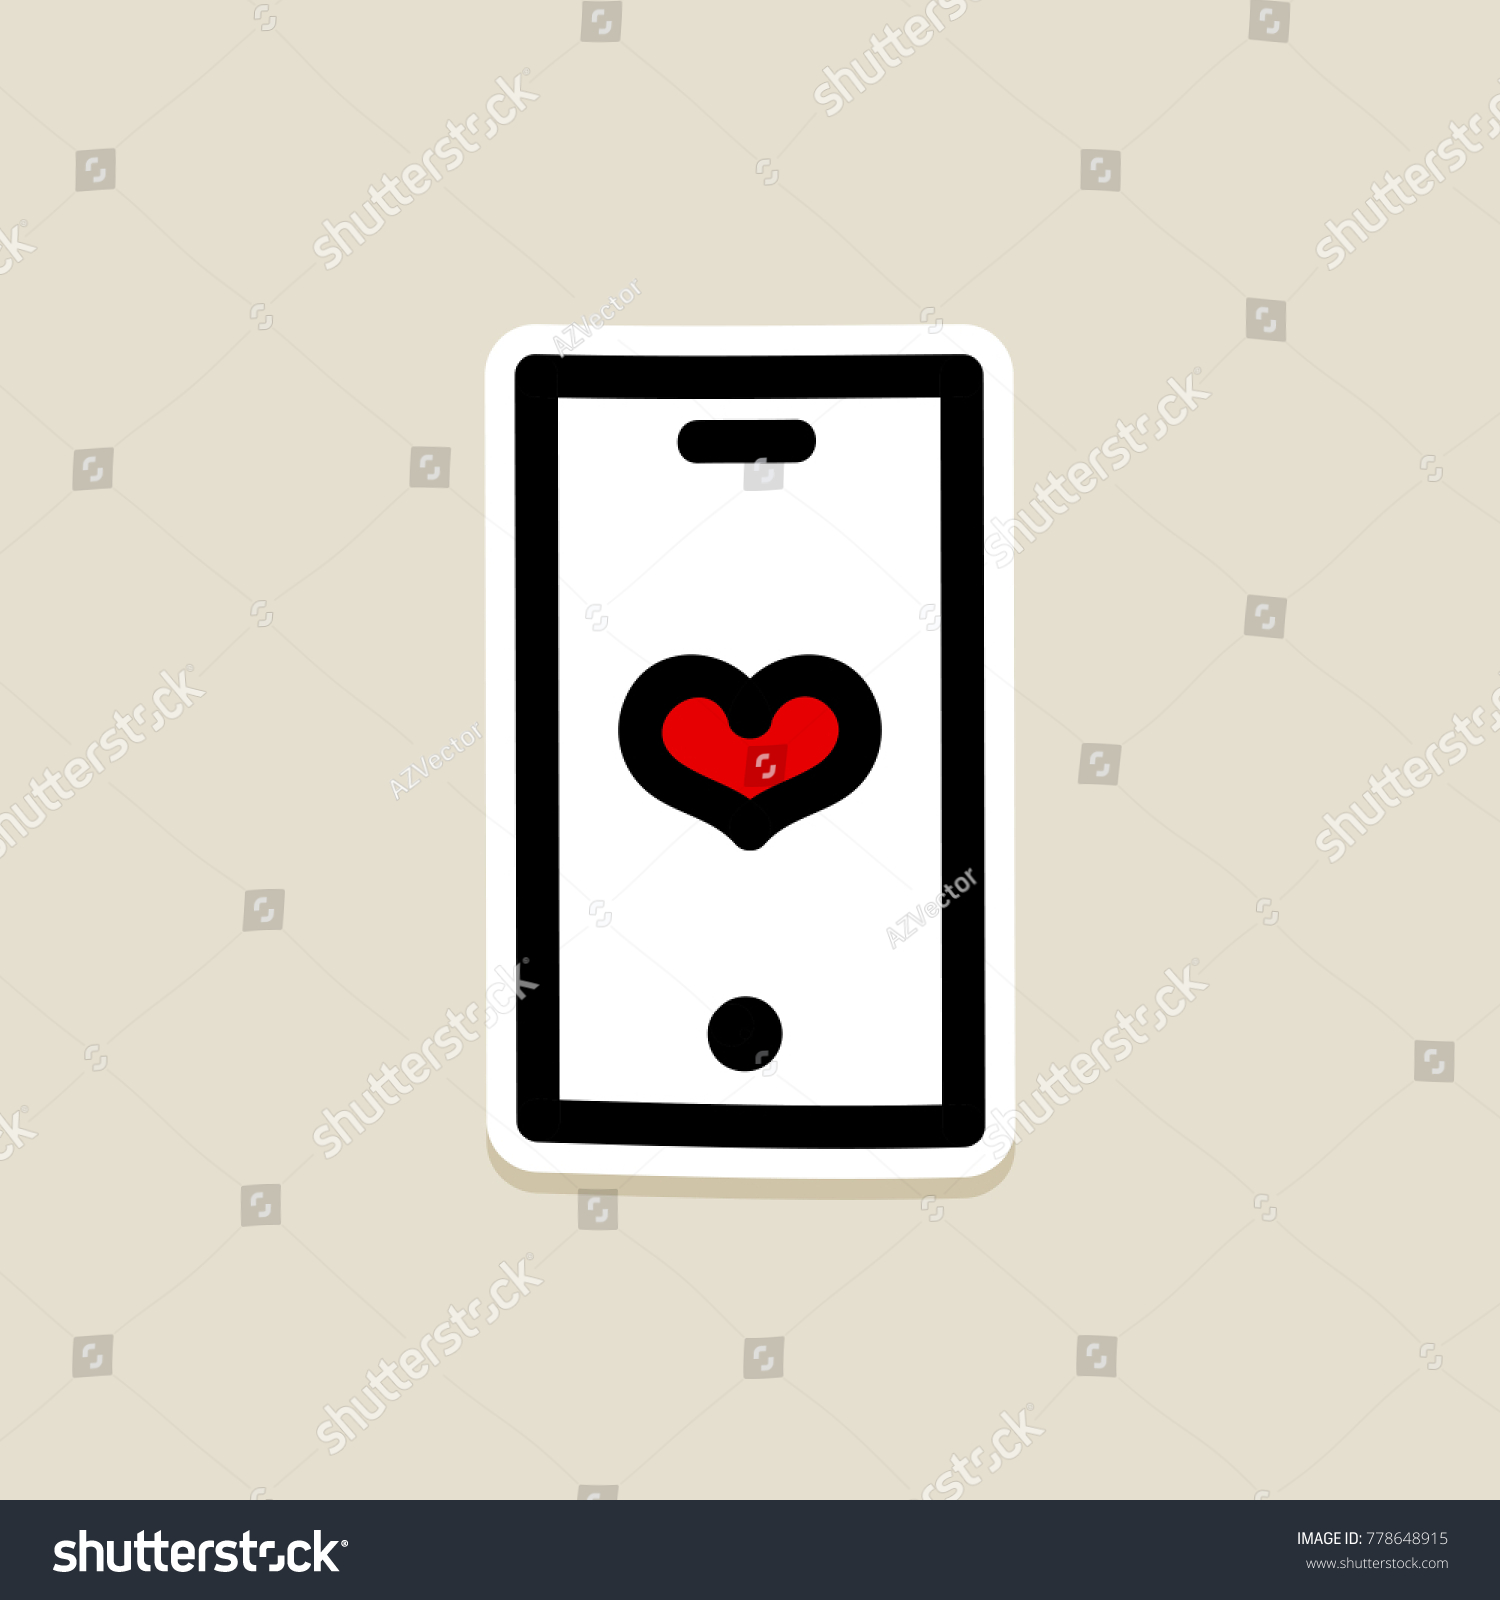 Technology Heart Smartphone Mobile Phone Romantic Telephone Call.  Valentineu0027s Day Icon, Doodle, Hand